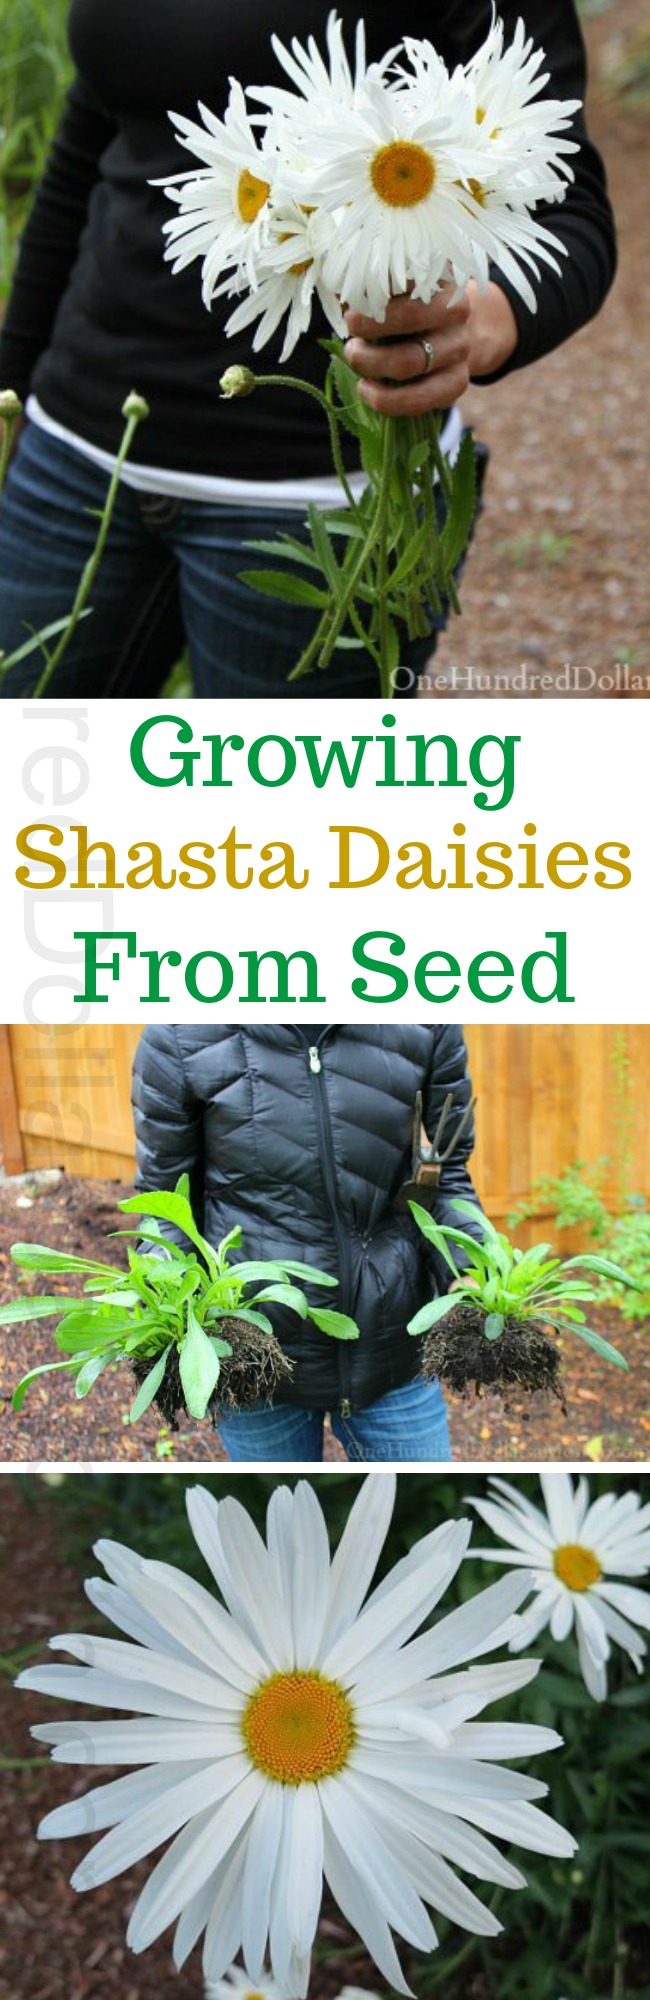 Growing Shasta Daisies From Seed